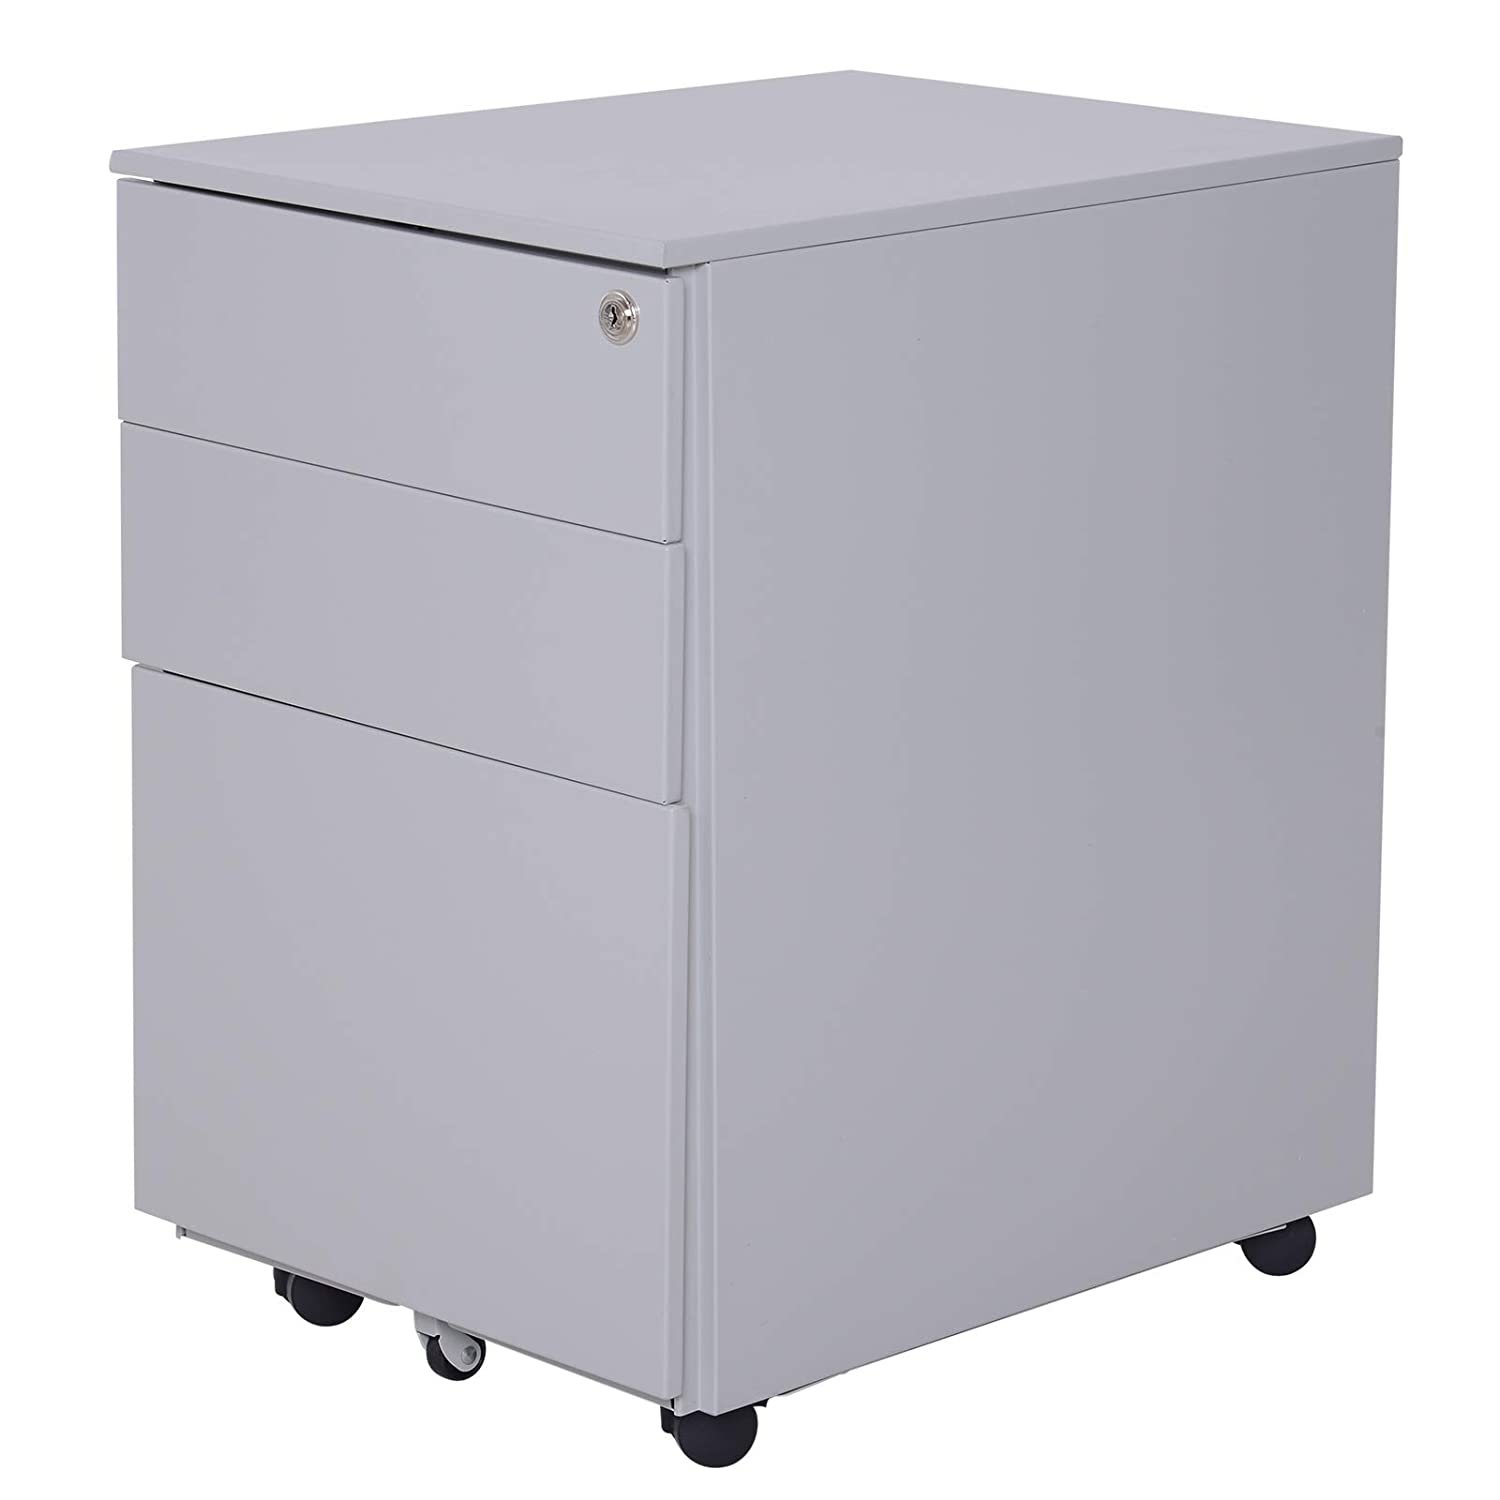 Stupendous Vinsetto 24 Metal 3 Drawer Locking Under Desk Filing Cabinet On Wheels Grey Beutiful Home Inspiration Cosmmahrainfo